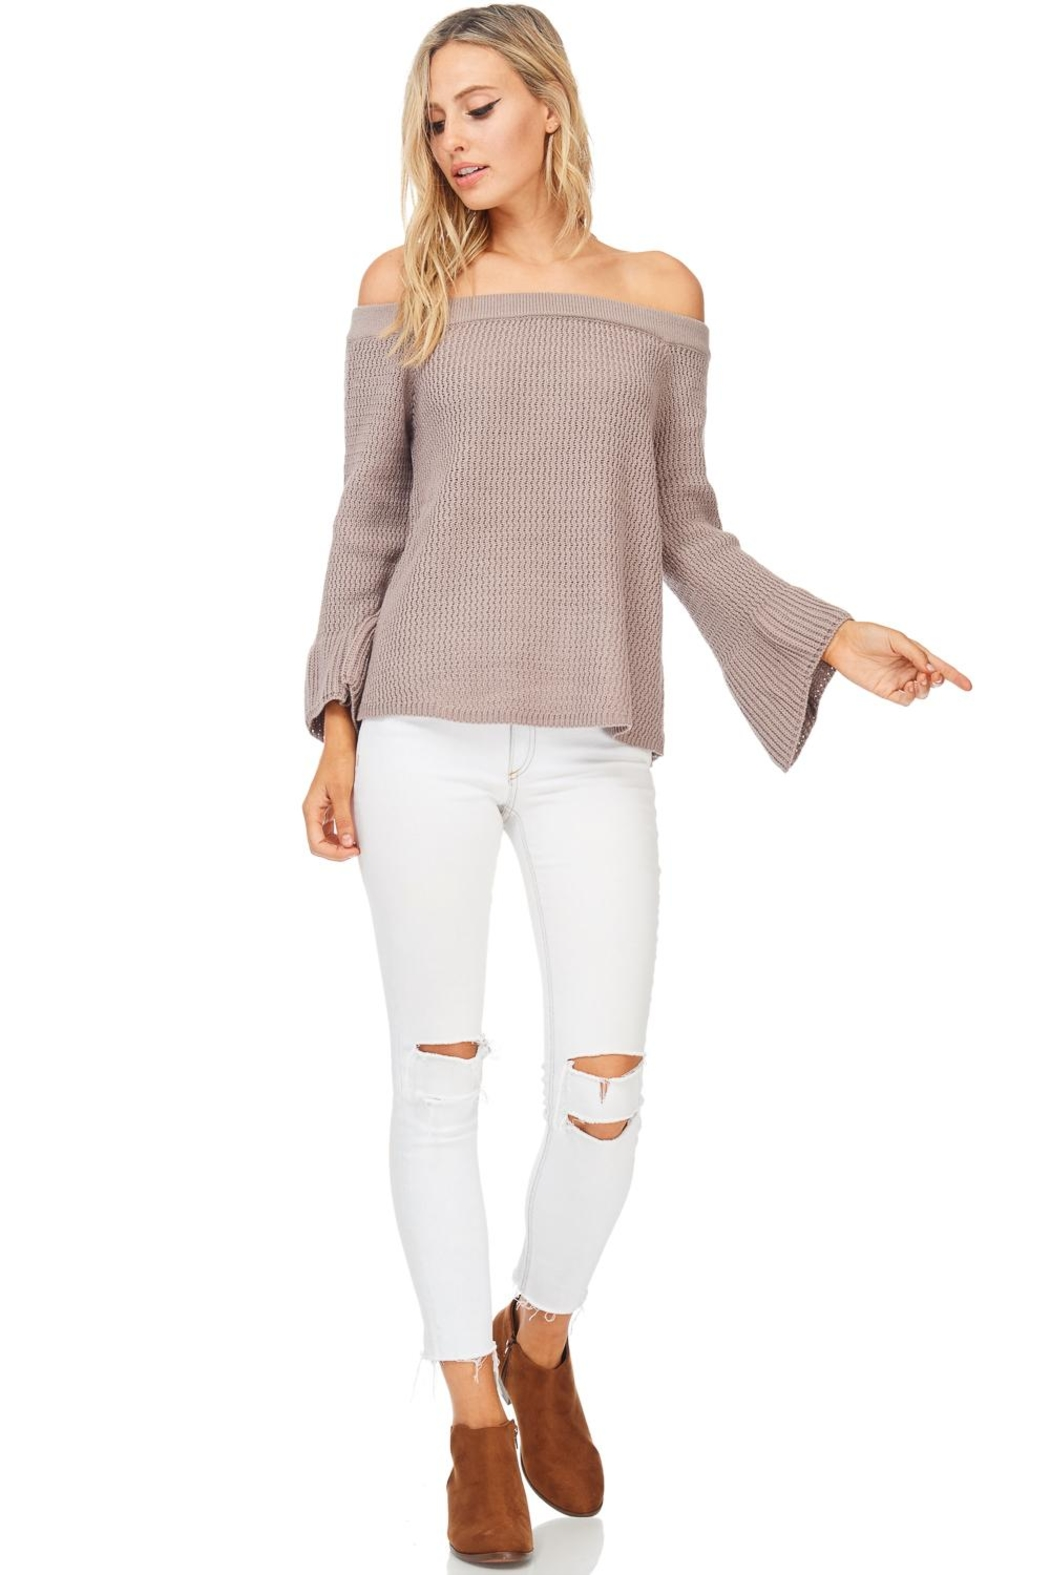 LoveRiche Taupe Off Shoulder Sweater - Front Full Image